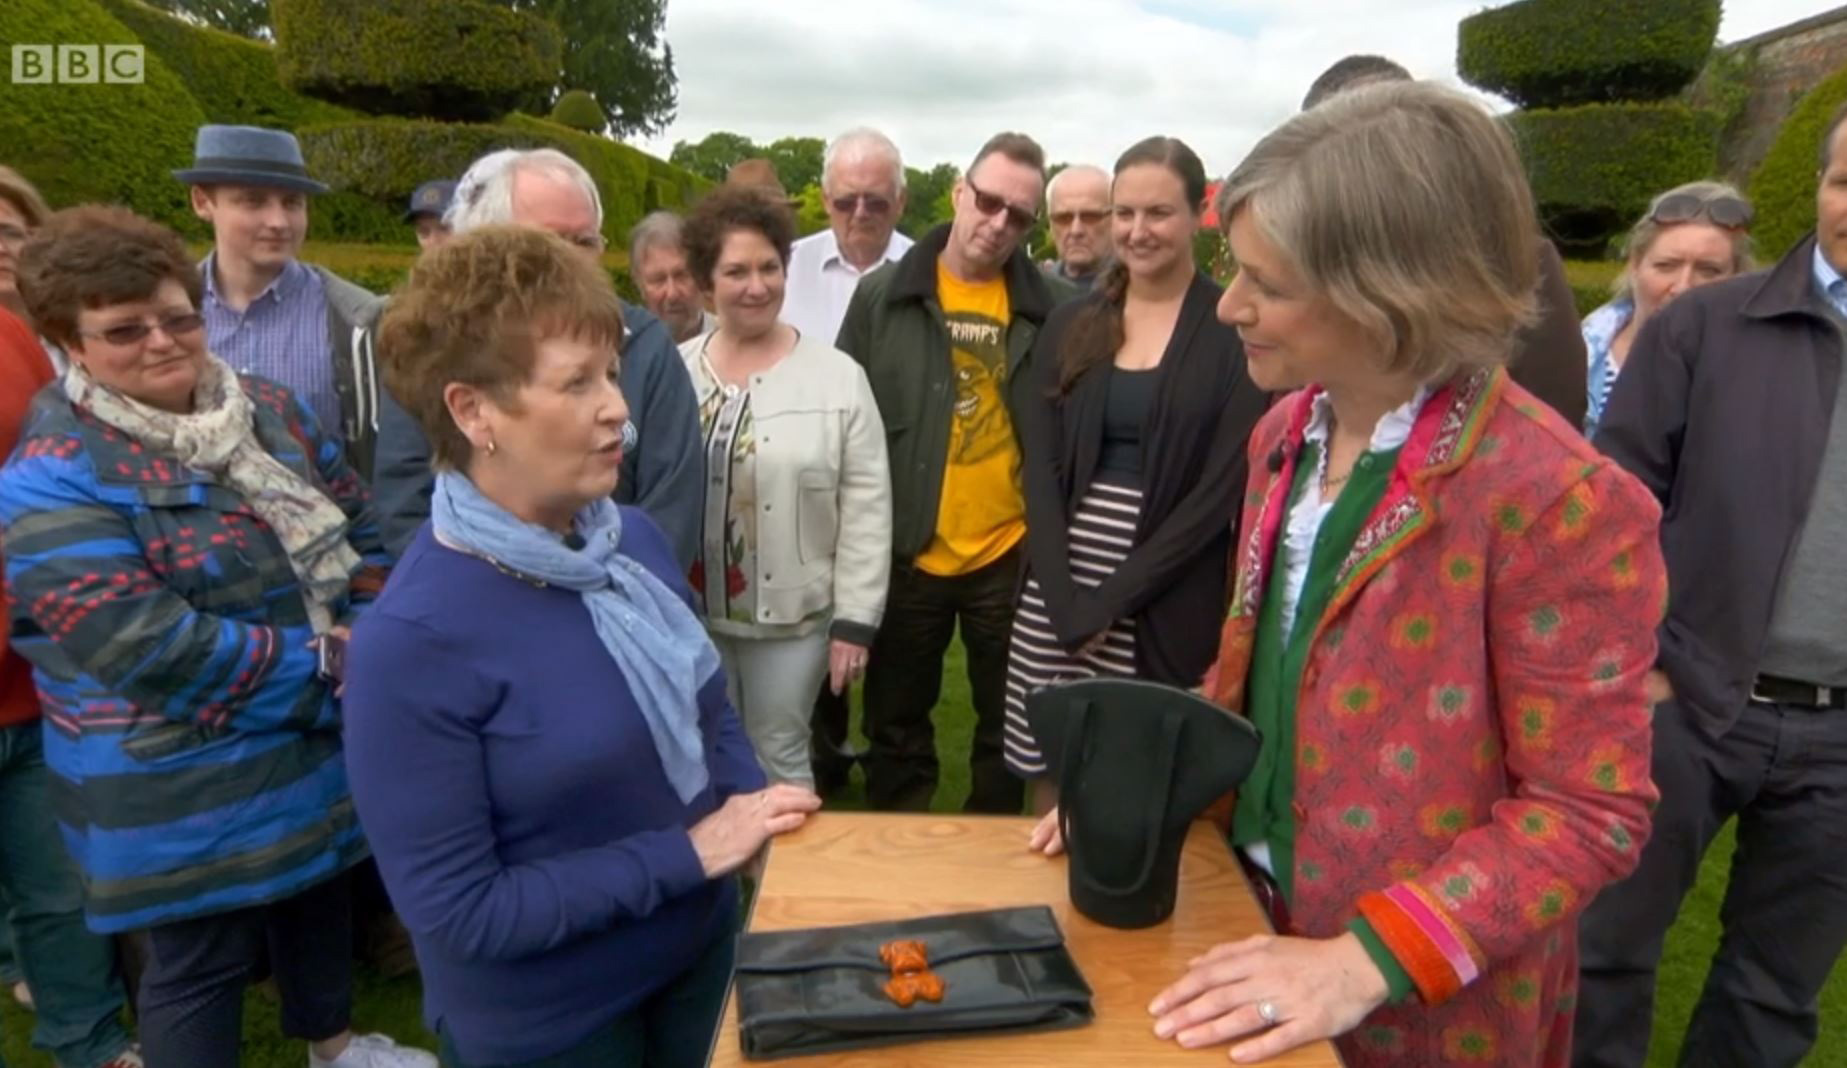 Antiques Roadshow has been blasted by health watchdogs after it highlighted a dangerous World War Two gas mask containing cancer-causing asbestos (BBC)